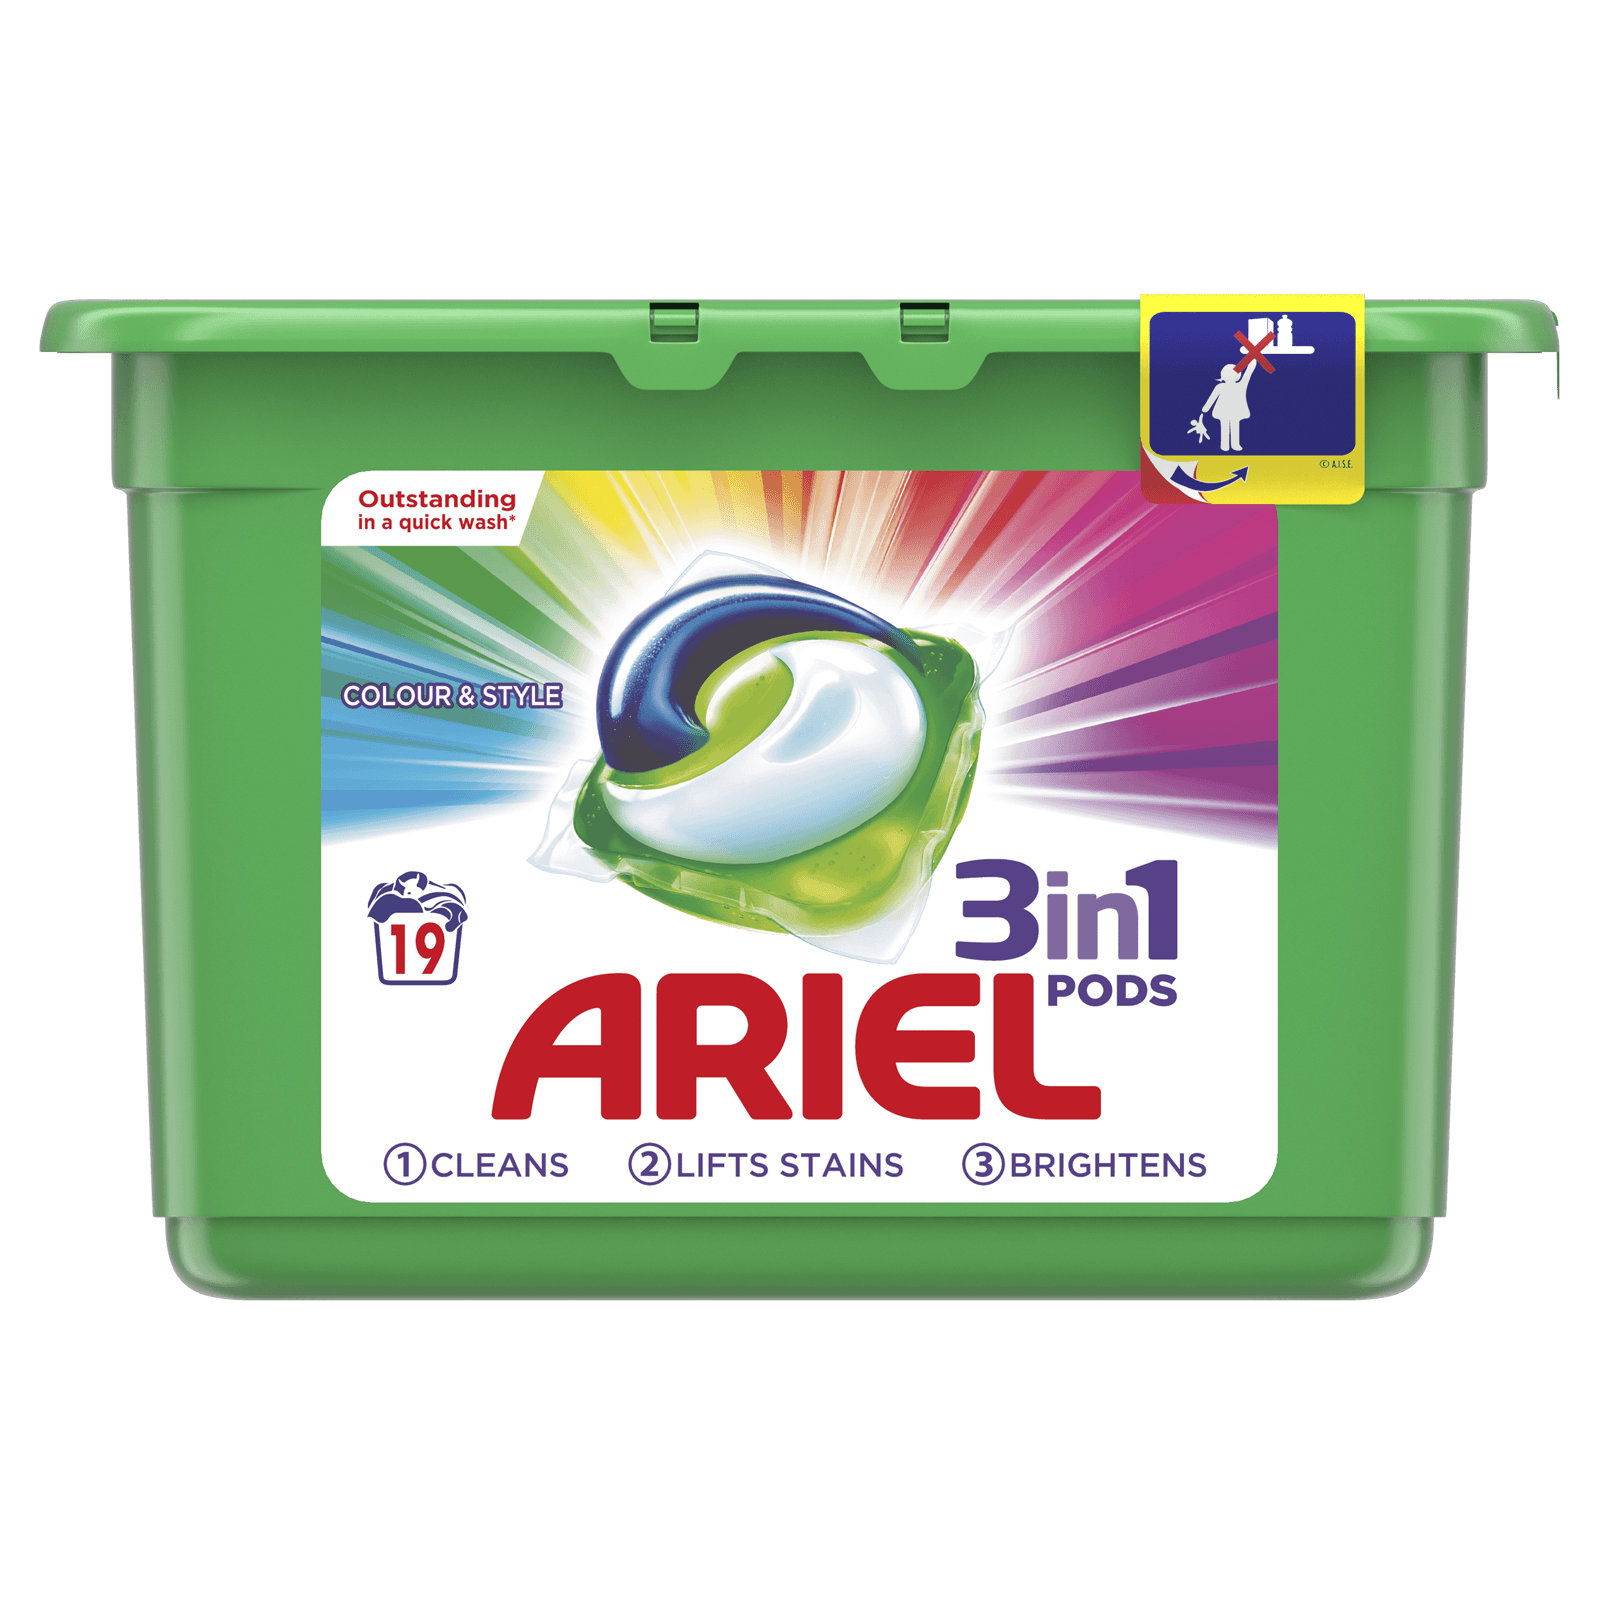 Ariel 3in1 PODS Washing Tablets Colour & Style